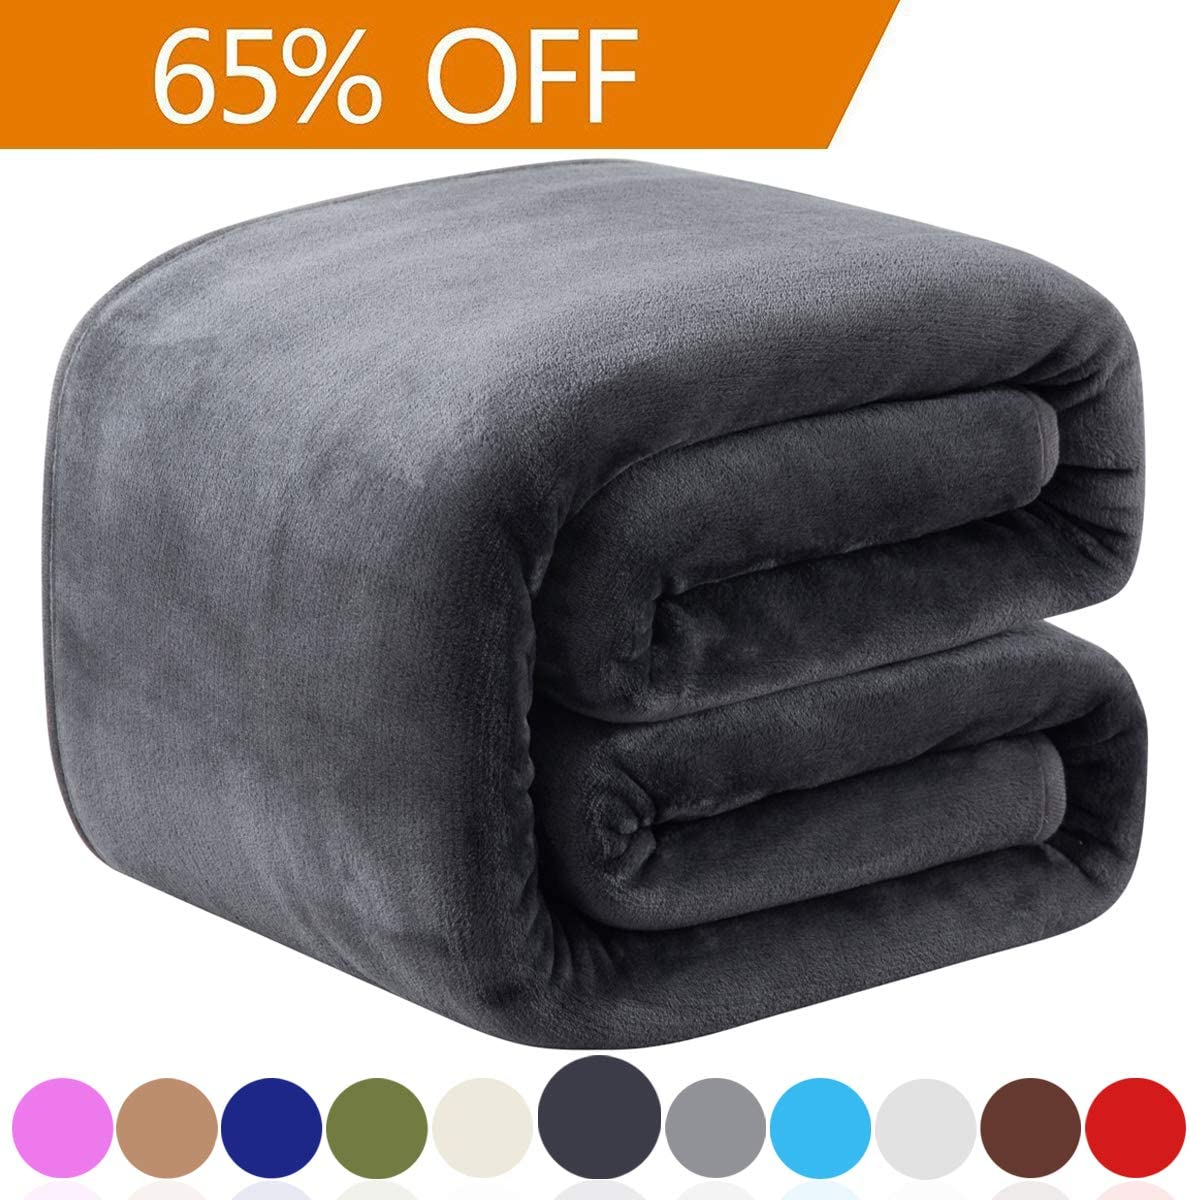 "Richave Fleece Queen Size Summer Blanket All Season 350GSM Lightweight Throw for The Bed Extra Soft Brush Fabric Winter Warm Sofa Blanket 90"" x 90""(Dark Gray Queen)"